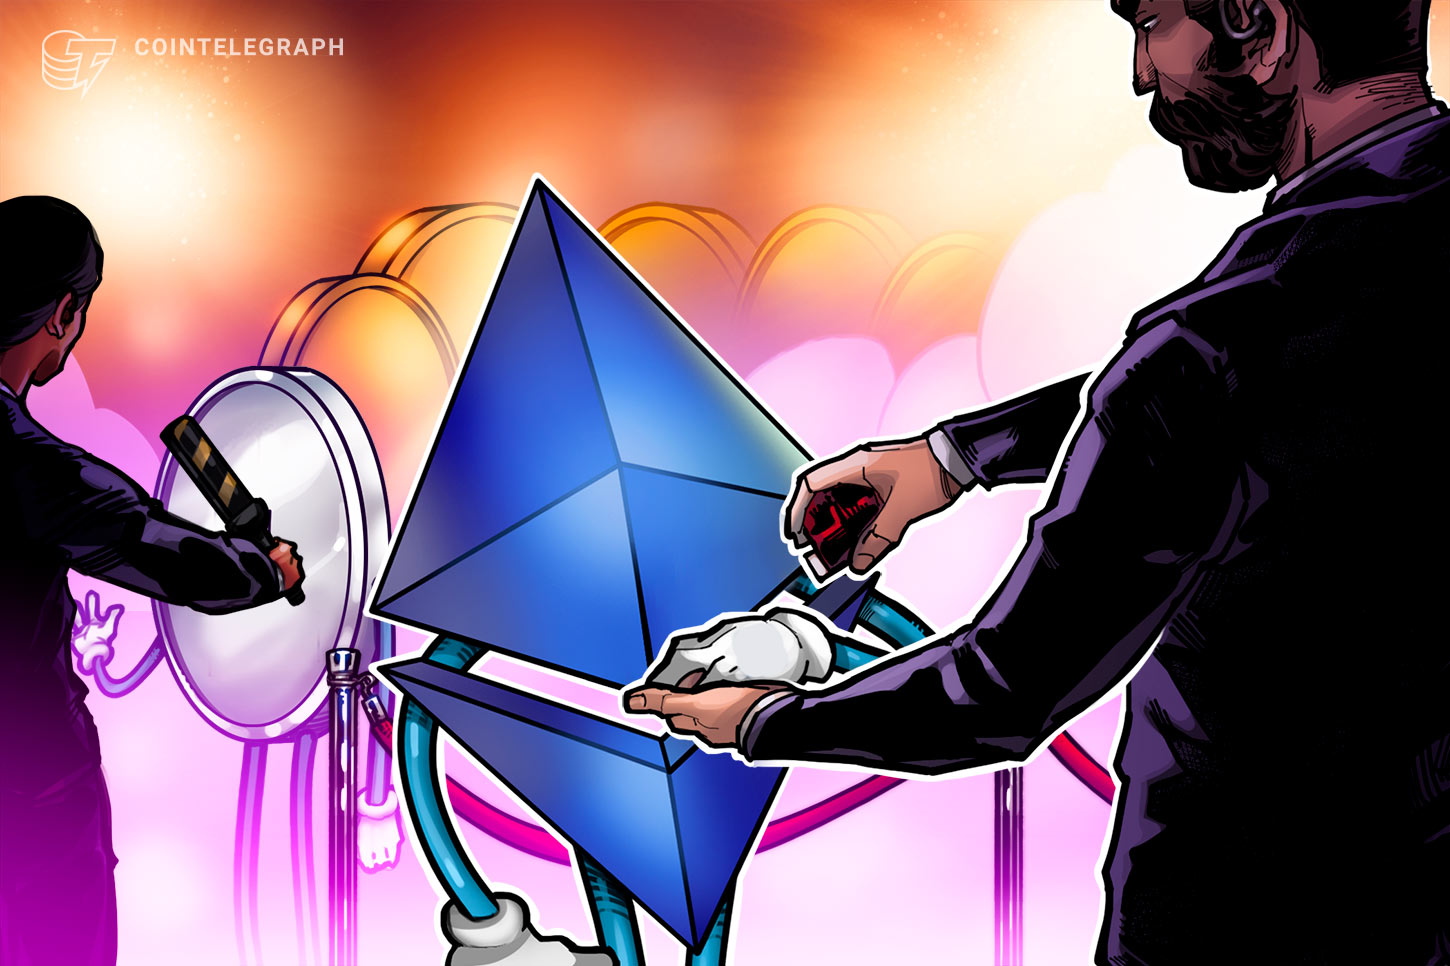 After Ethereum, 'next stop will be higher risk alts,' says Bitcoin investor Raoul Pal